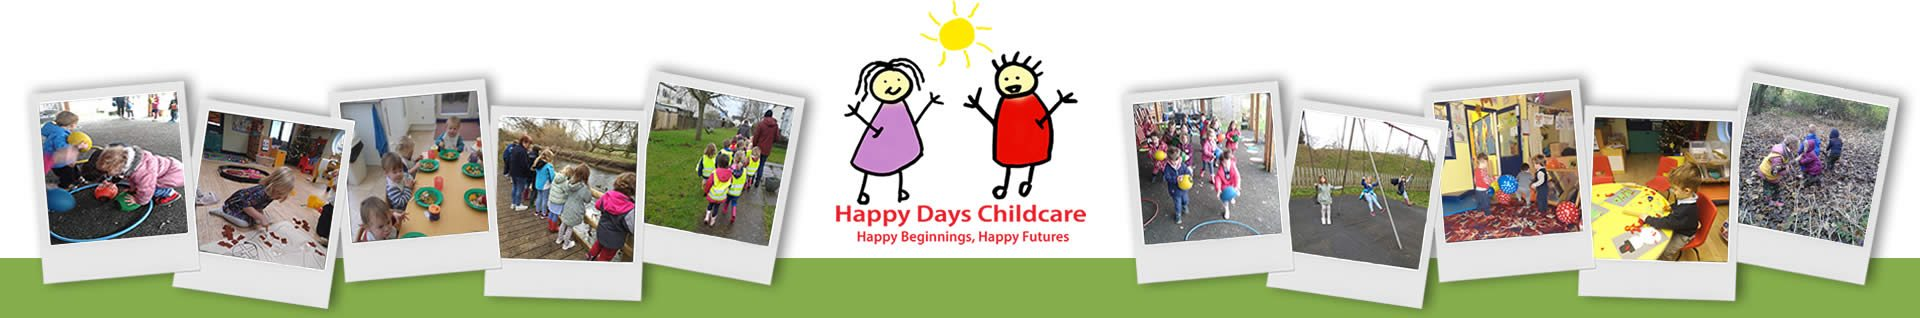 Happy Days Childcare Nursery Photo Gallery